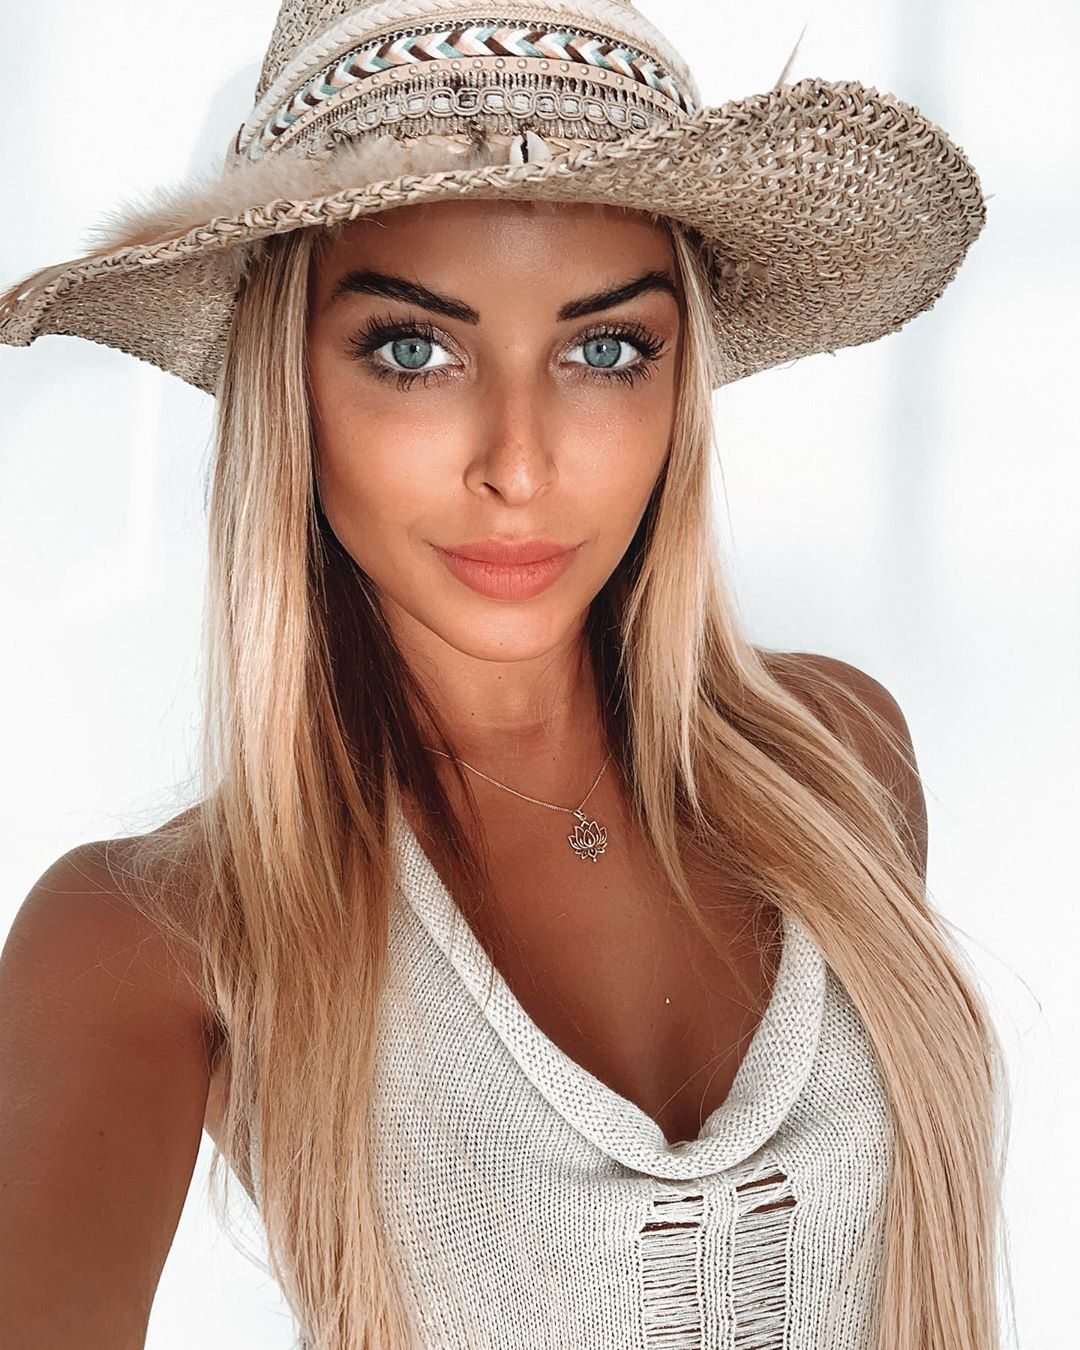 Chiara-Bransi-Wallpapers-Insta-Fit-Bio-6